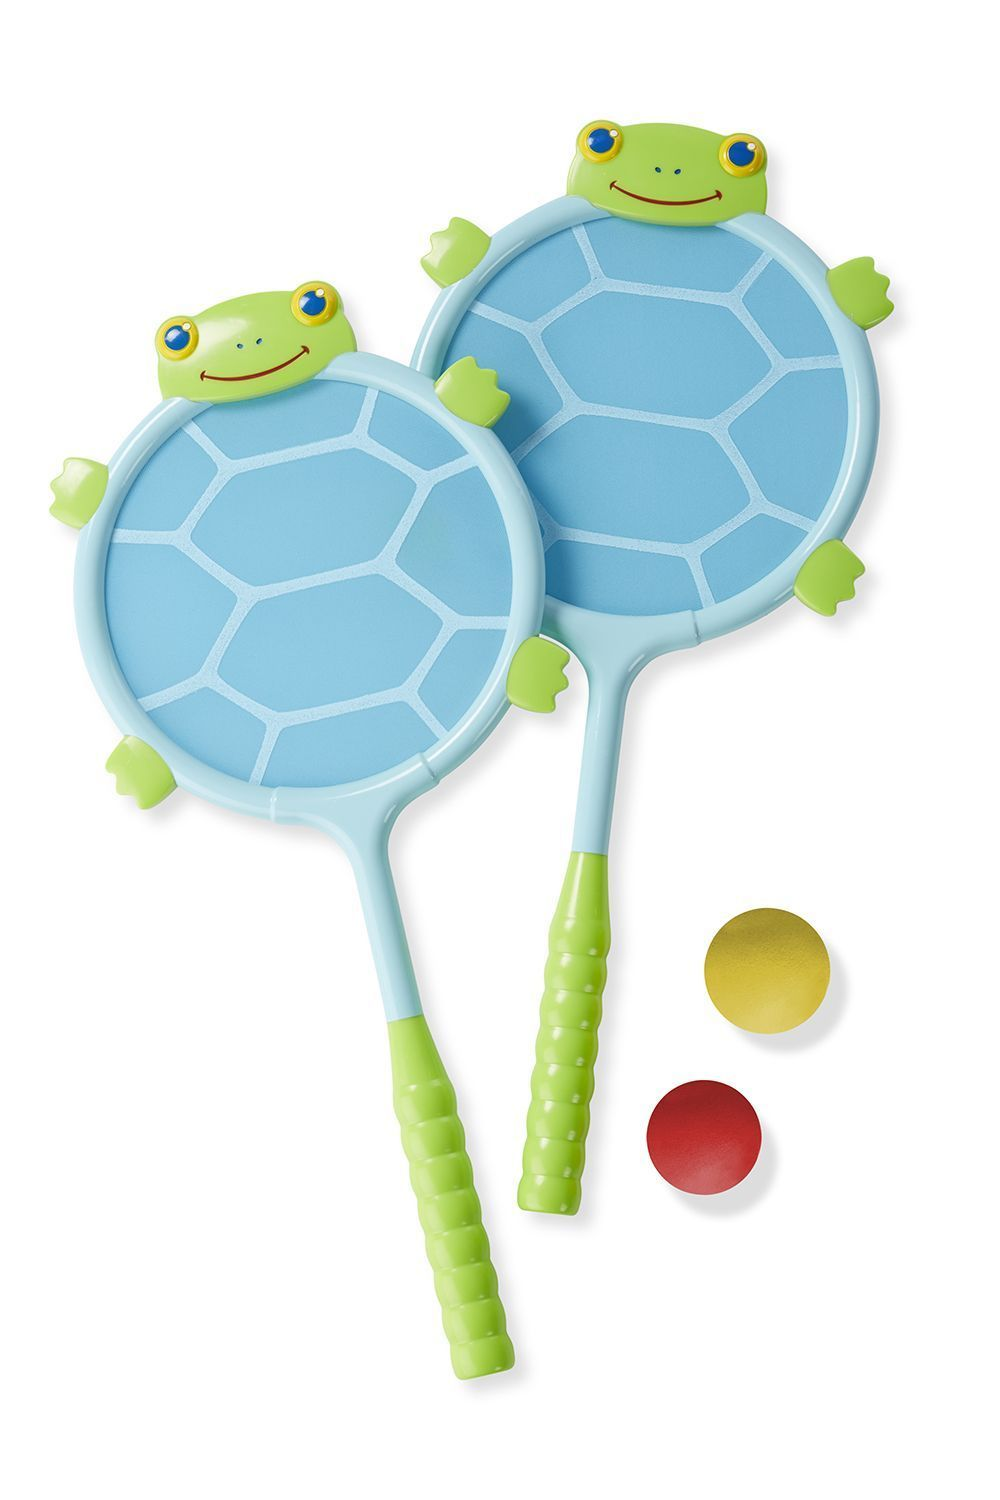 Set de raquettes de plage tortue Snappy the Turtle